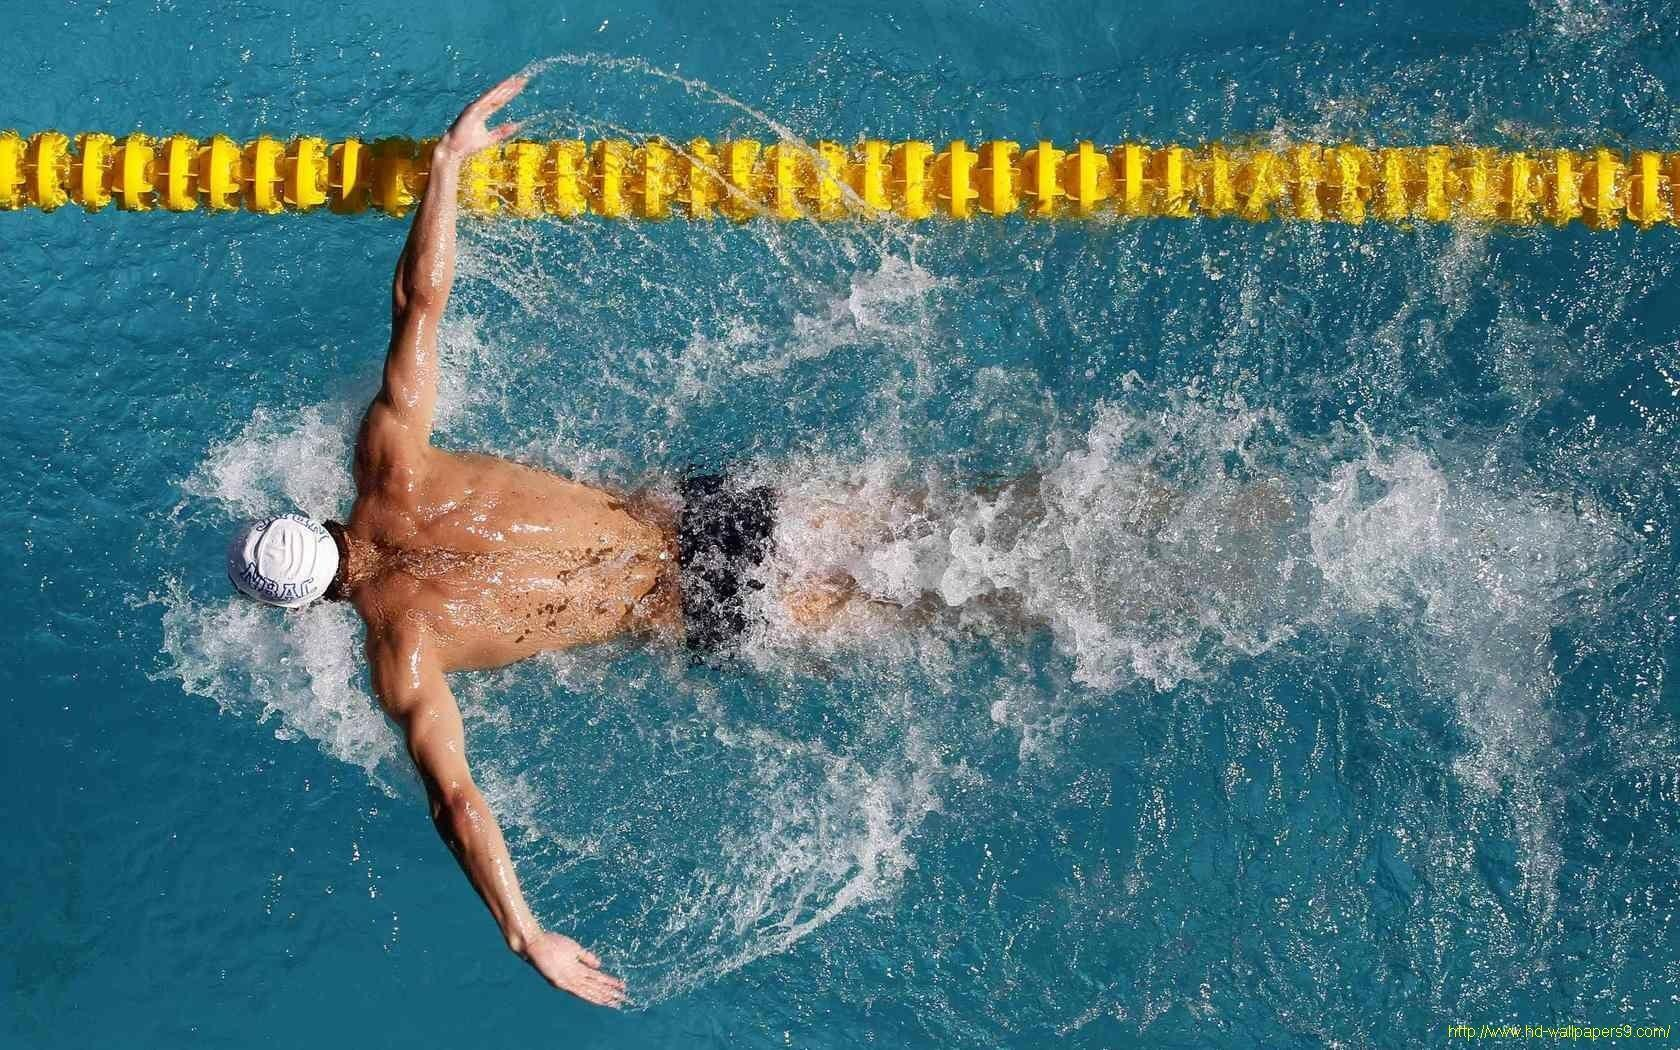 Swimming Wallpapers, 35 Widescreen Full HD Wallpapers of Swimming